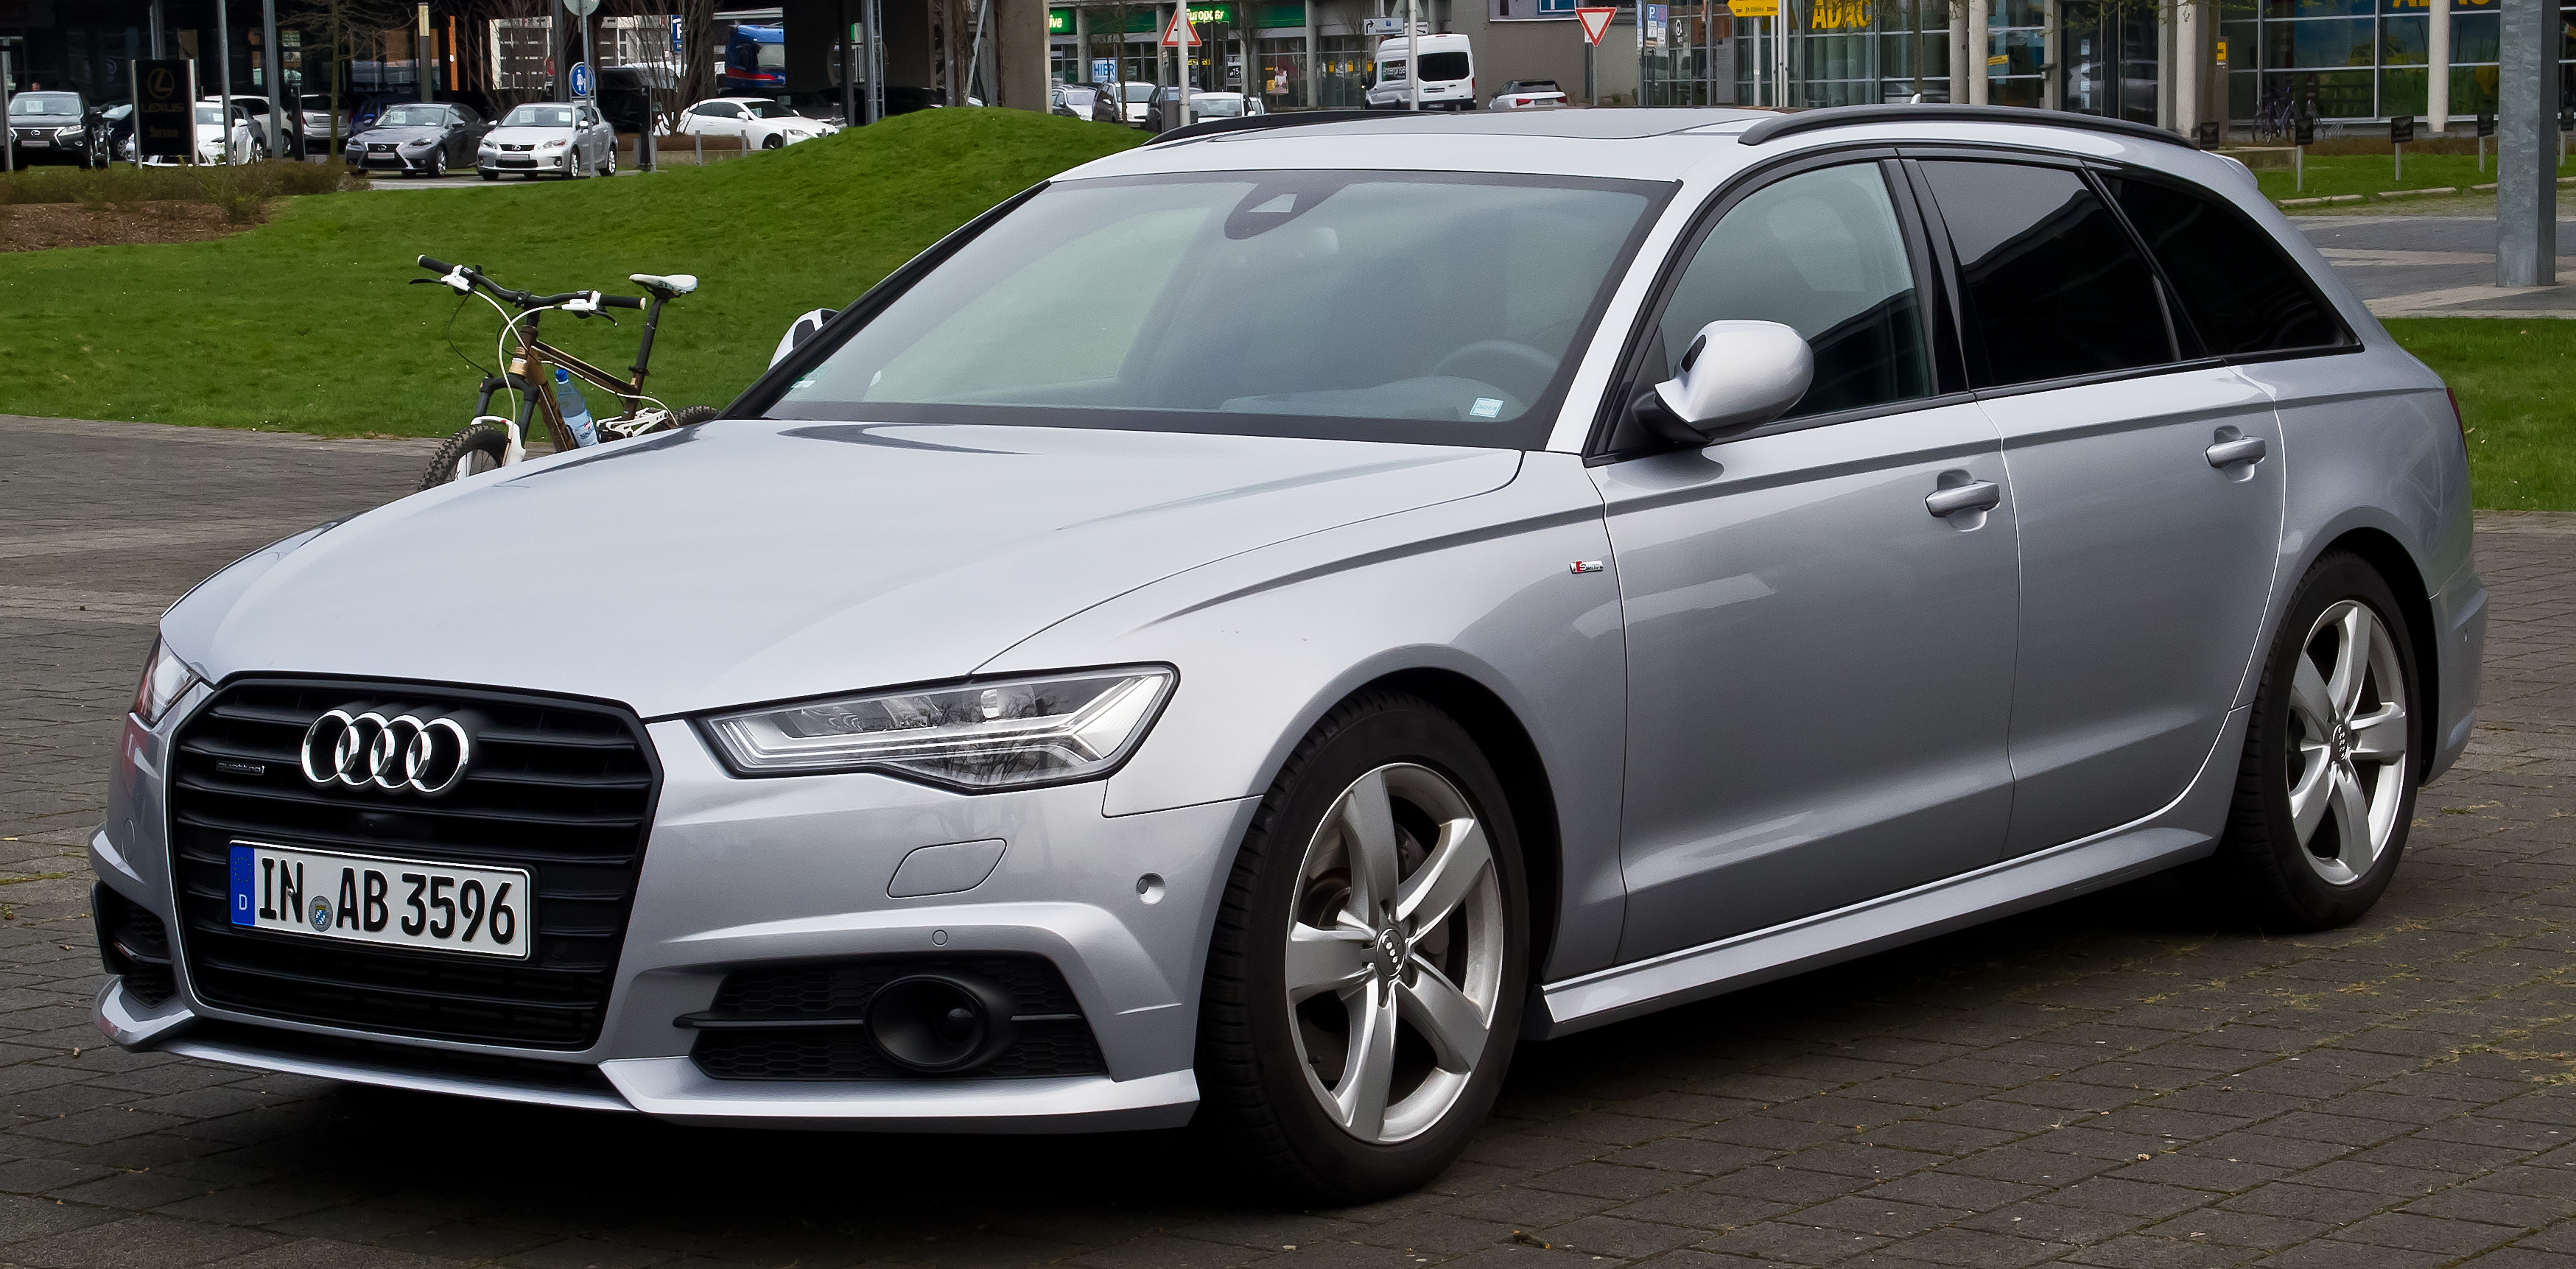 2015 audi a6 avant c7 pictures information and specs. Black Bedroom Furniture Sets. Home Design Ideas